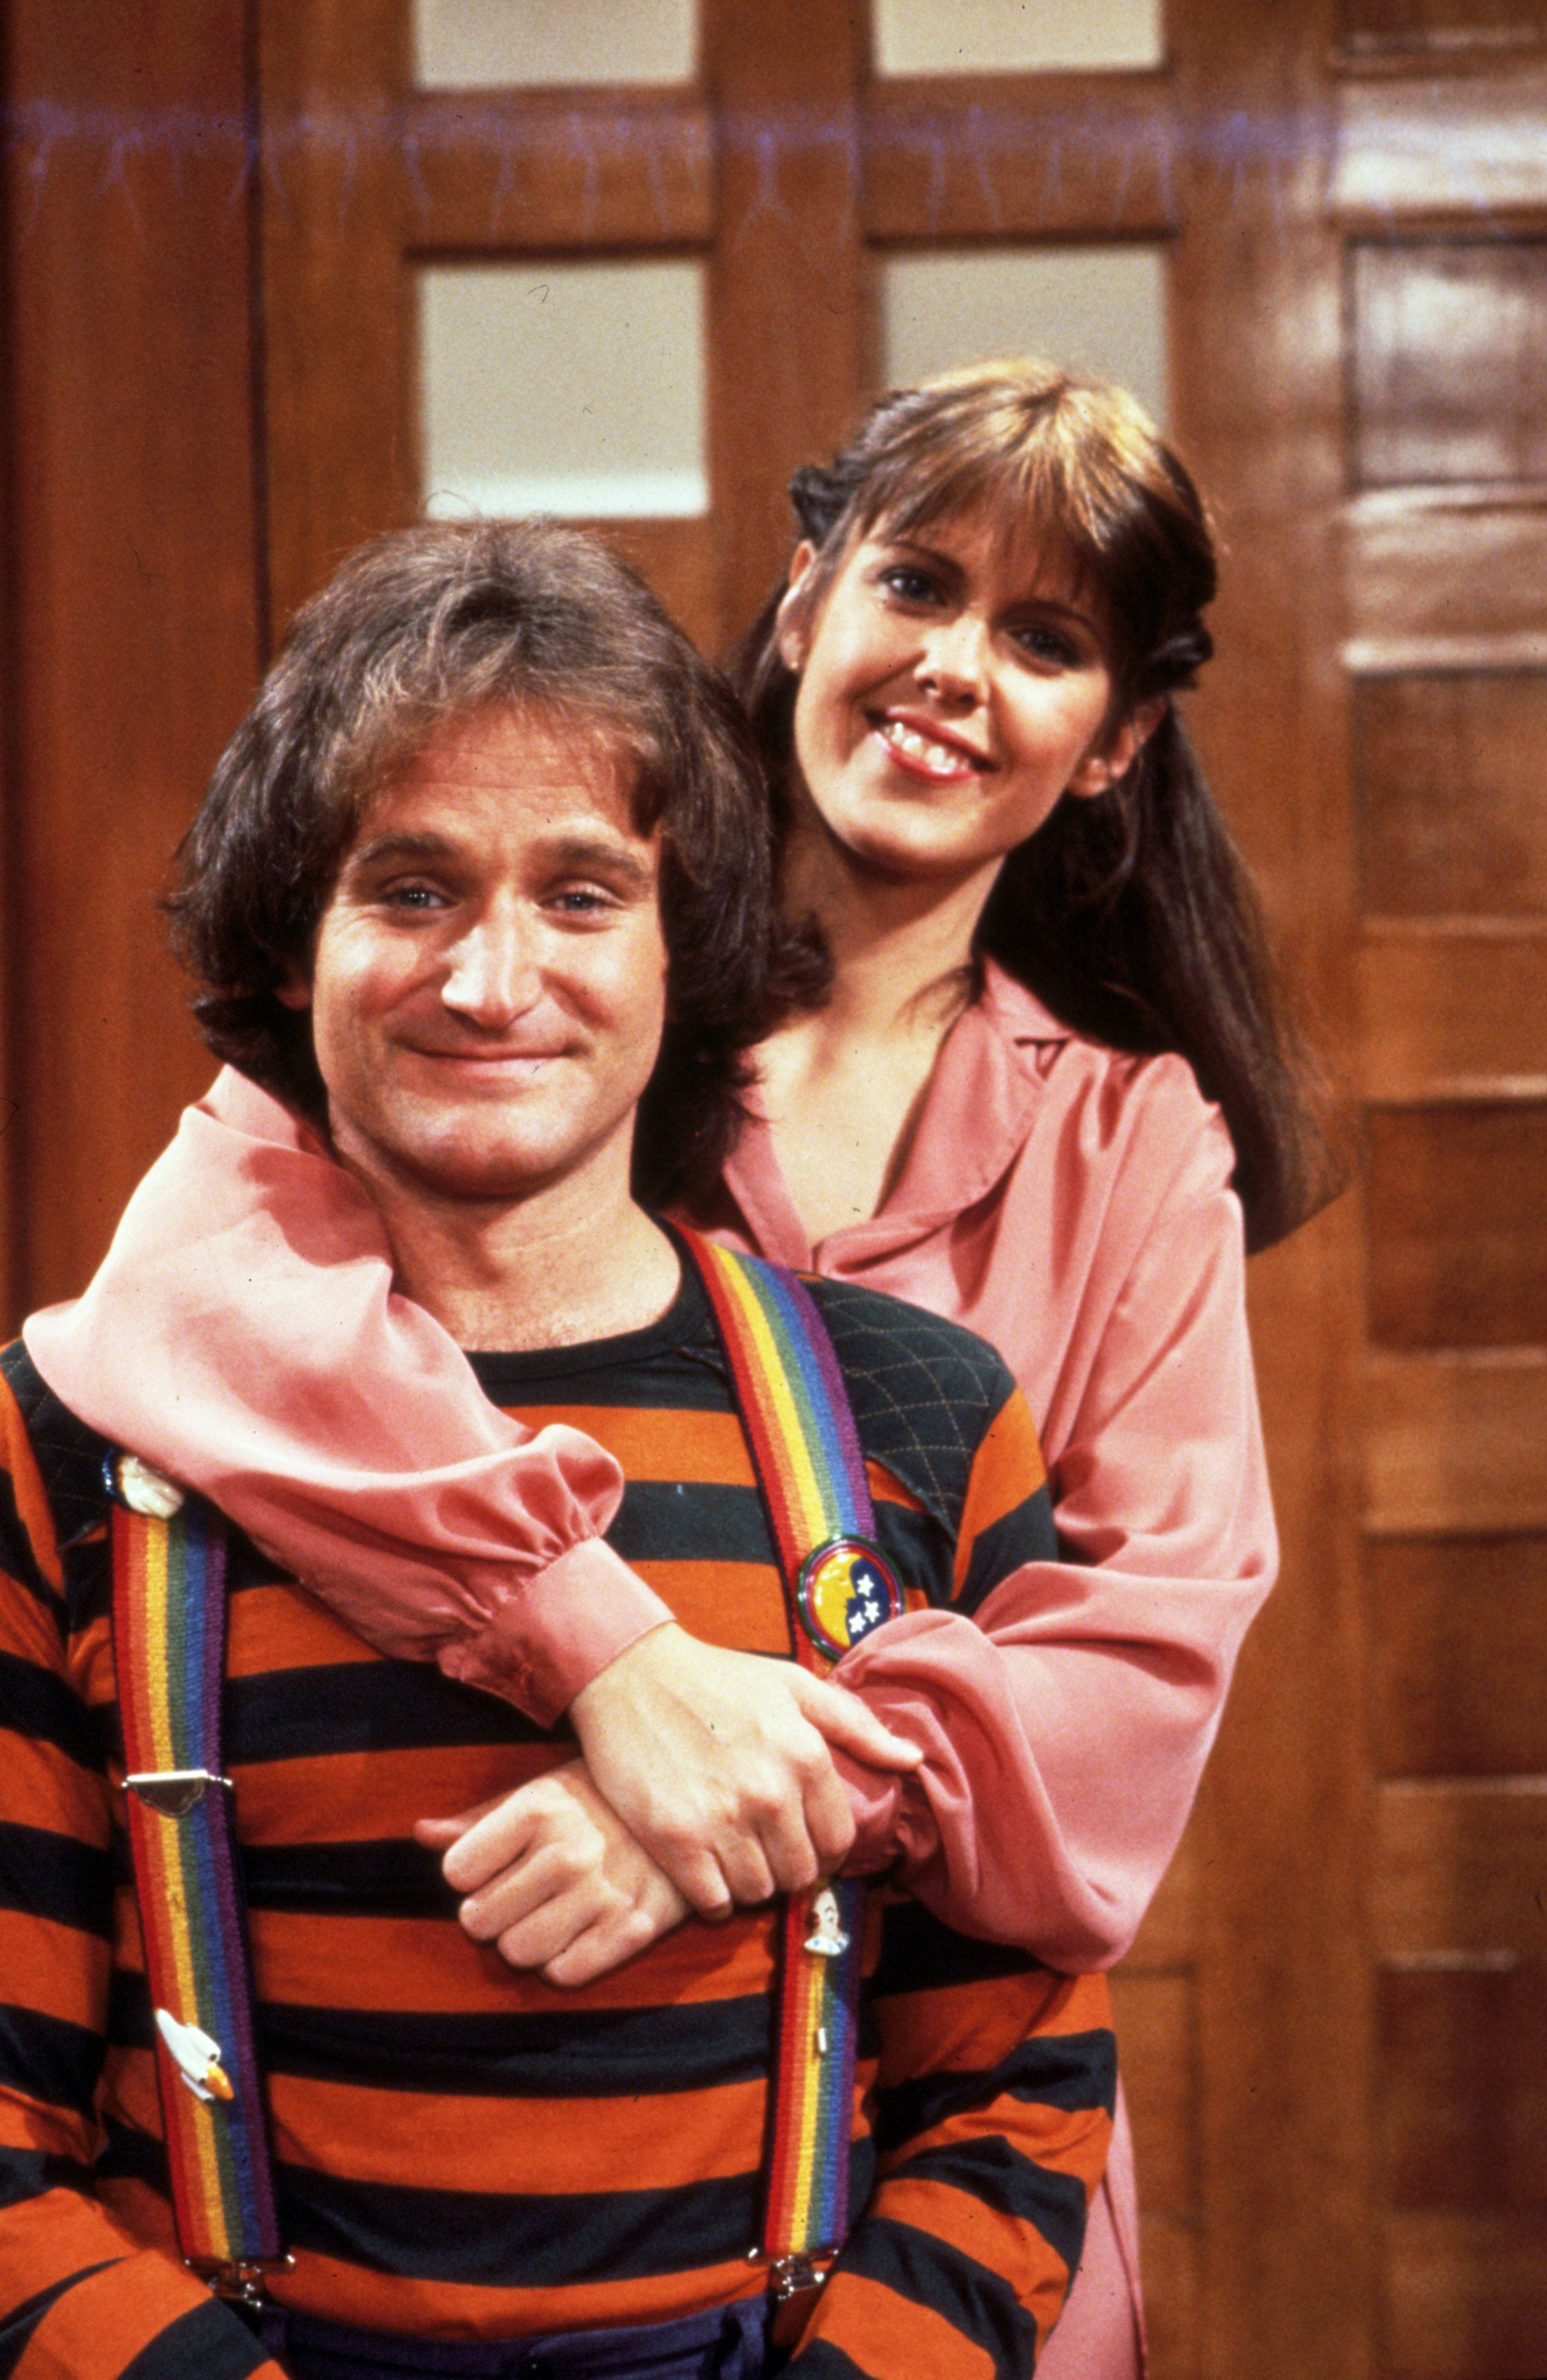 Robin Williams' Co-Star Pam Dawber Insists She 'Never Took Offence' Over On-Set